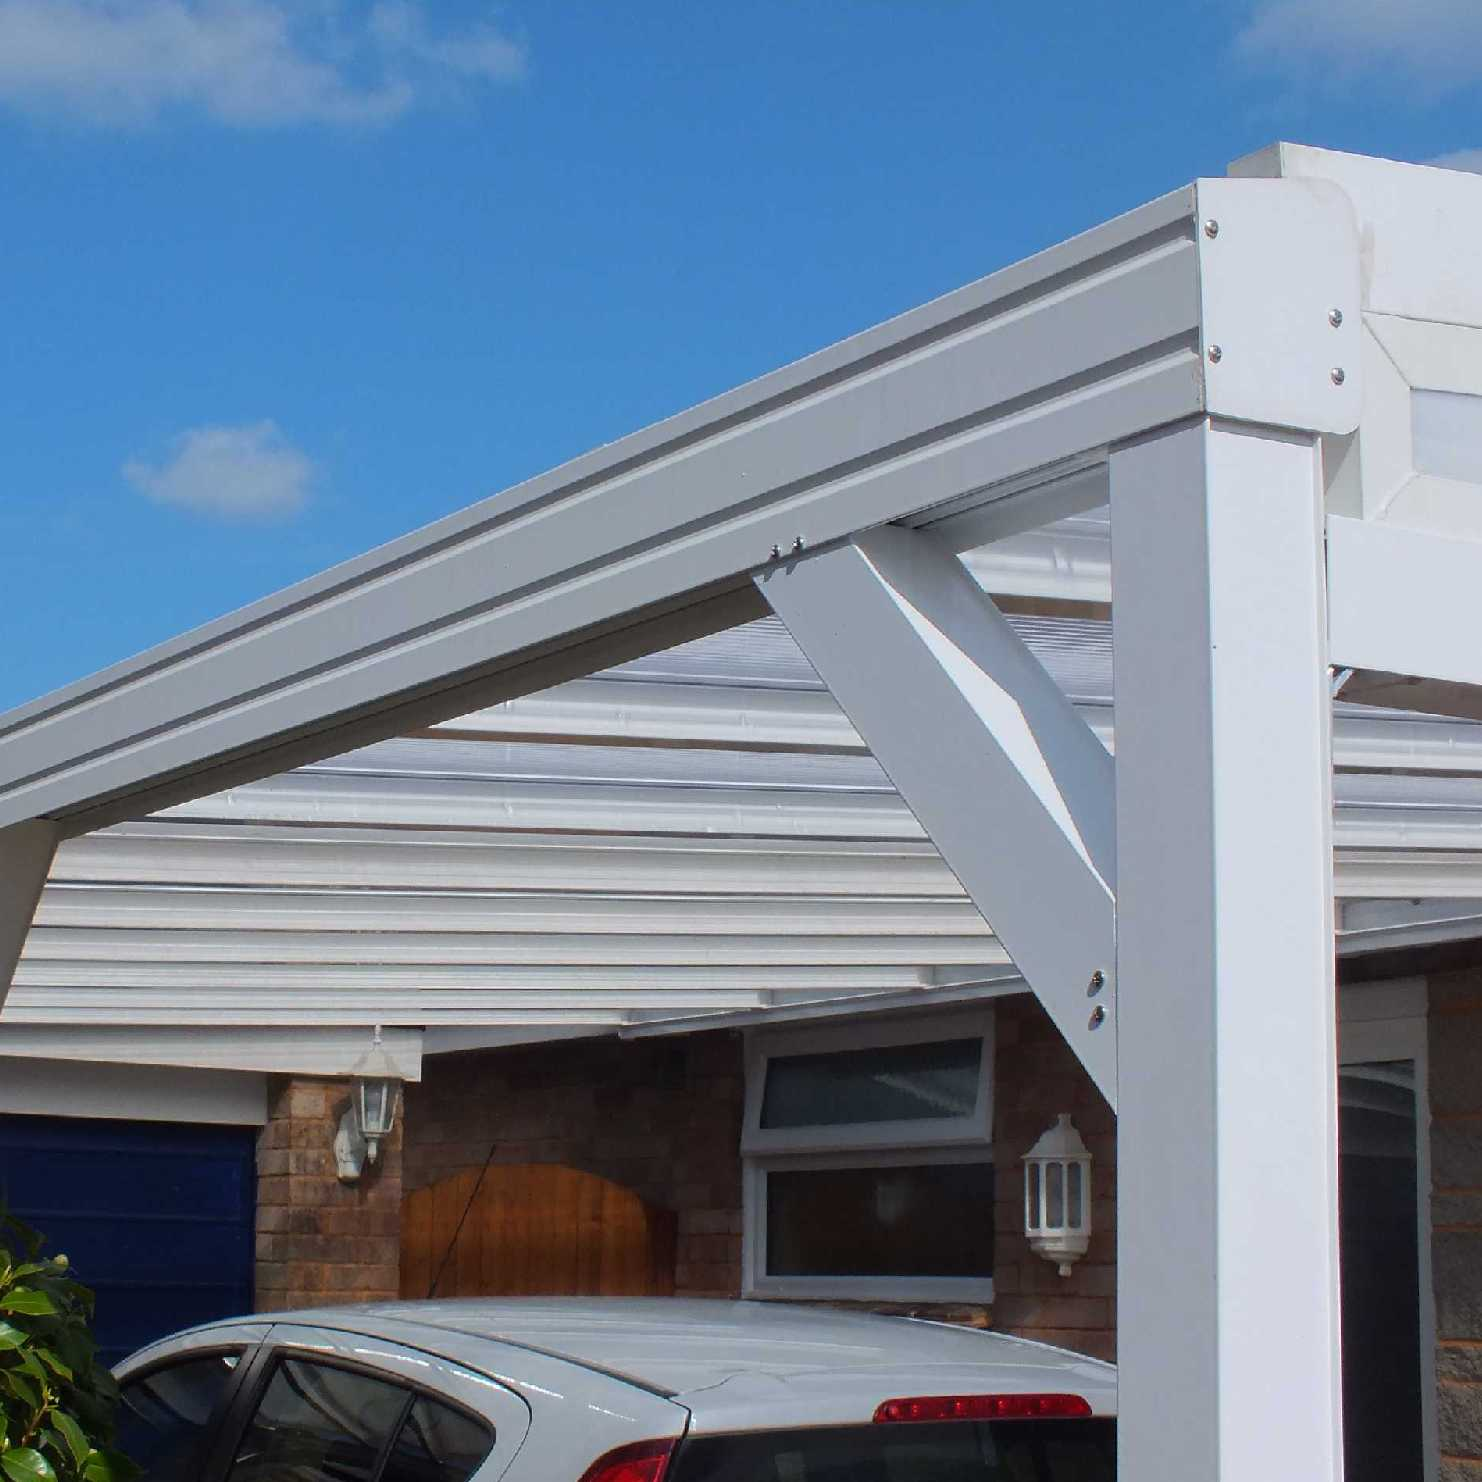 Buy Omega Smart White  Lean-To Canopy with 16mm Polycarbonate Glazing - 6.3m (W) x 2.0m (P), (4) Supporting Posts online today